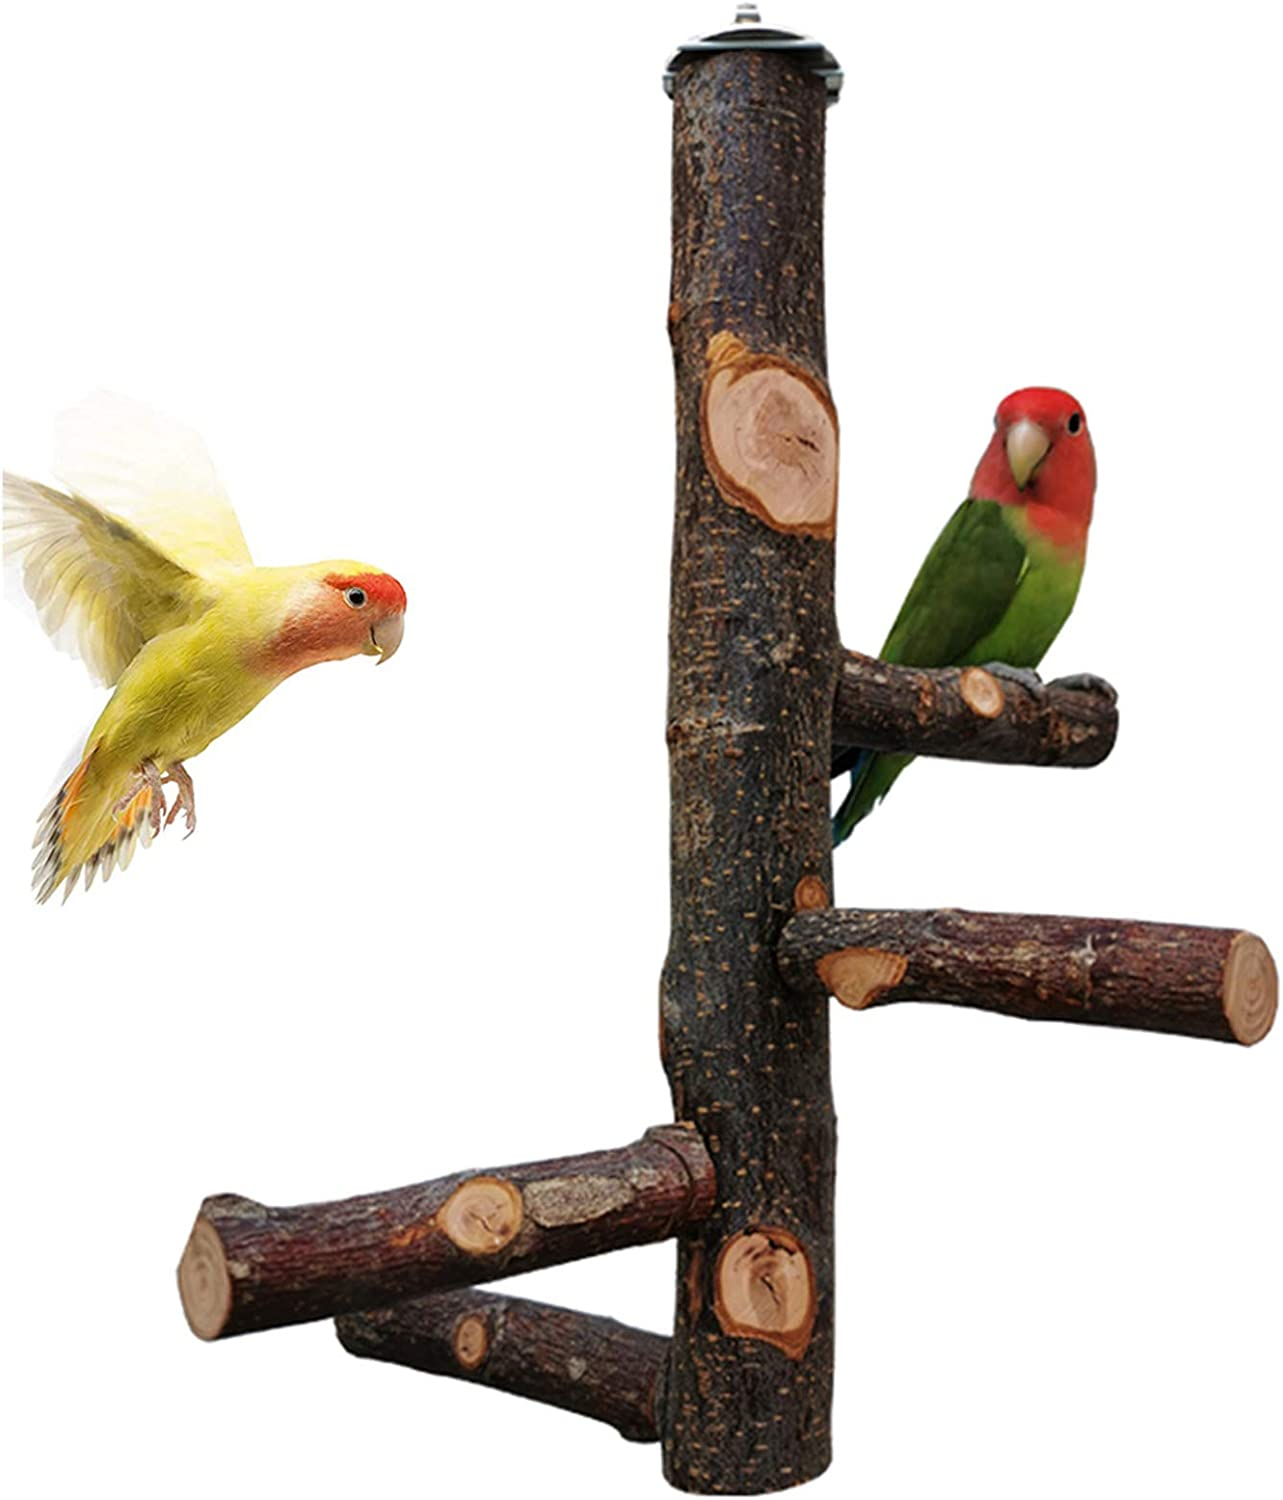 kathson Bird Perch Natural Apple Wood Stand Toy Branch Paw Grinding Standing Climbing Toy Cage Accessories for Small and Medium Parrots,Parakeets,Lovebirds,African Grey,Cockatiels